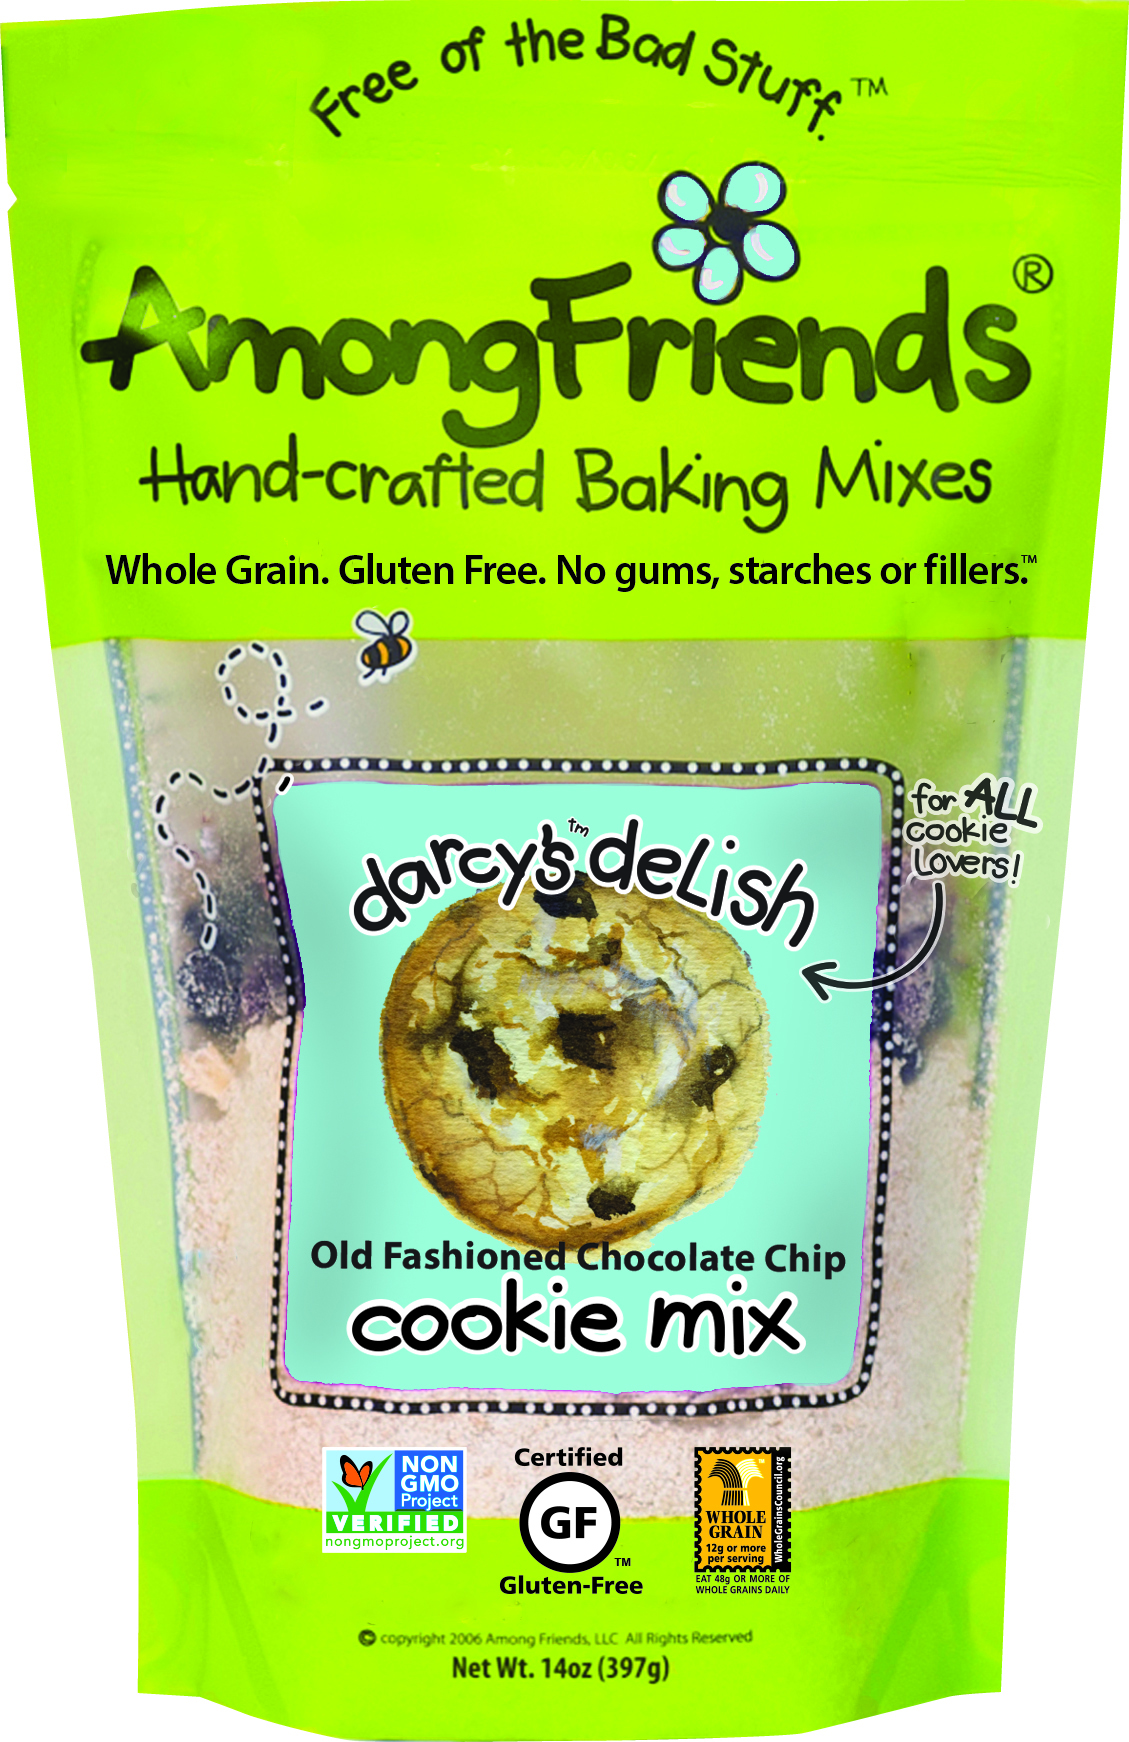 Among Friends: Darcy's Delish Old Fashioned Cookie Mix